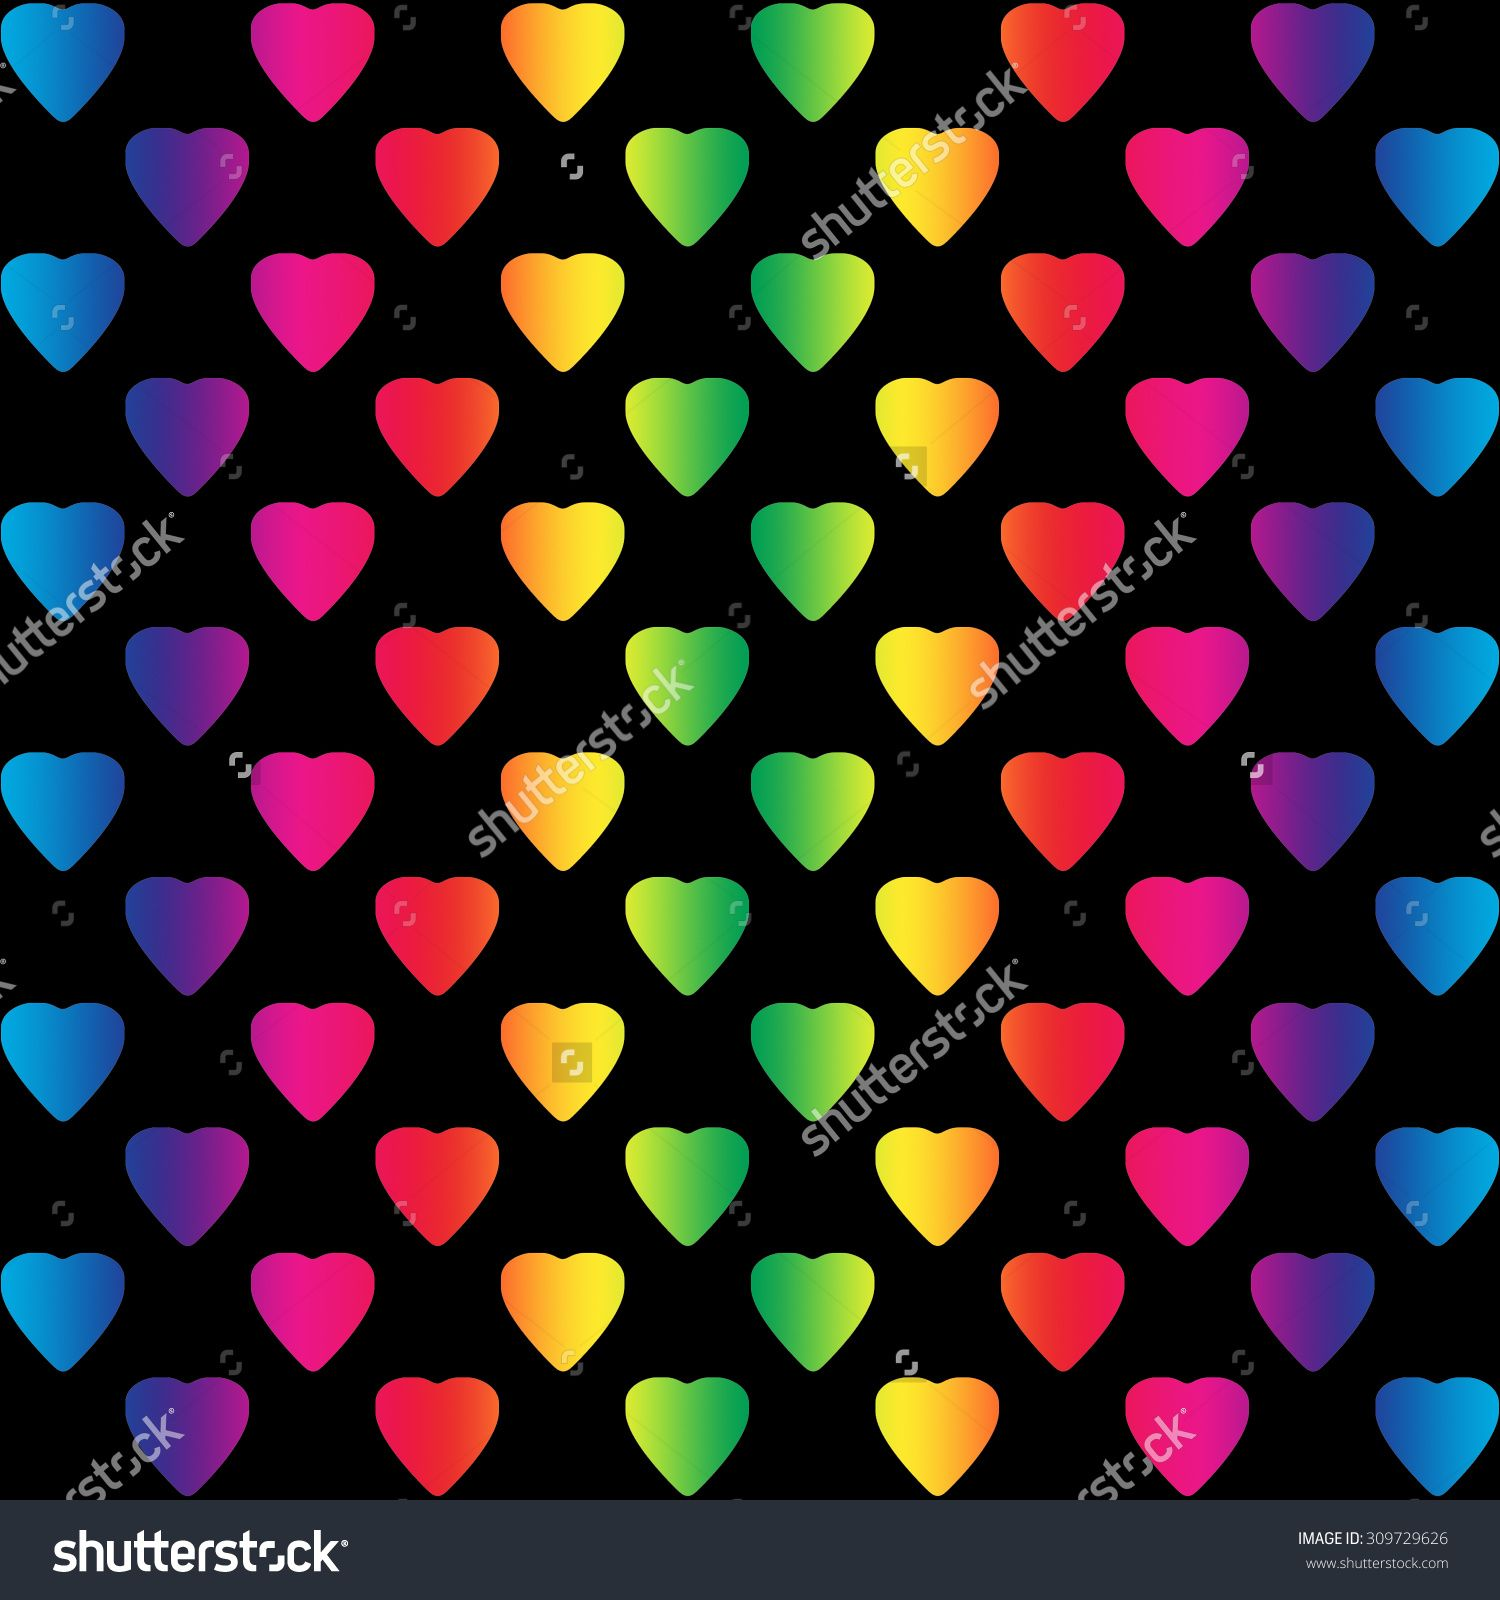 Bright Rainbow Colored Hearts On Black Background, A Seamless